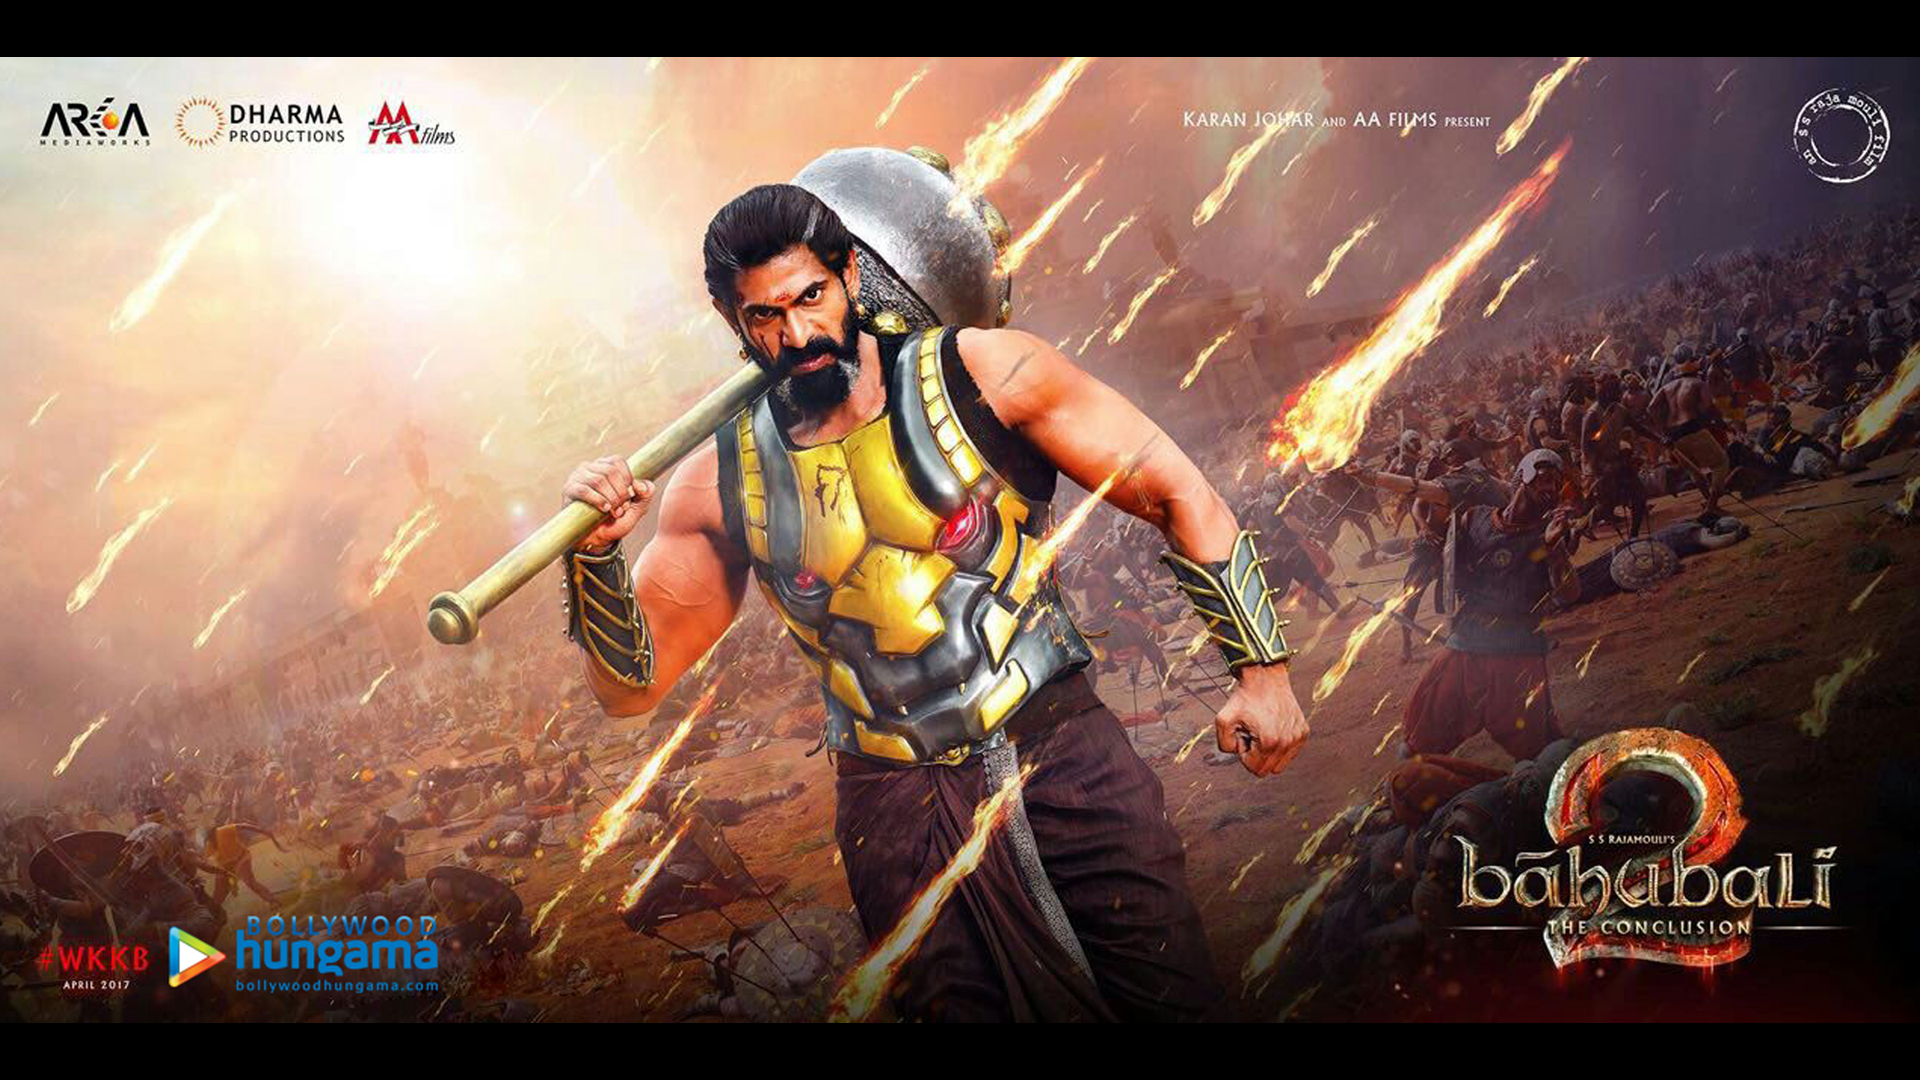 Wallpaper download bahubali 2 - 1920 X 1080 Set As Wallpaper